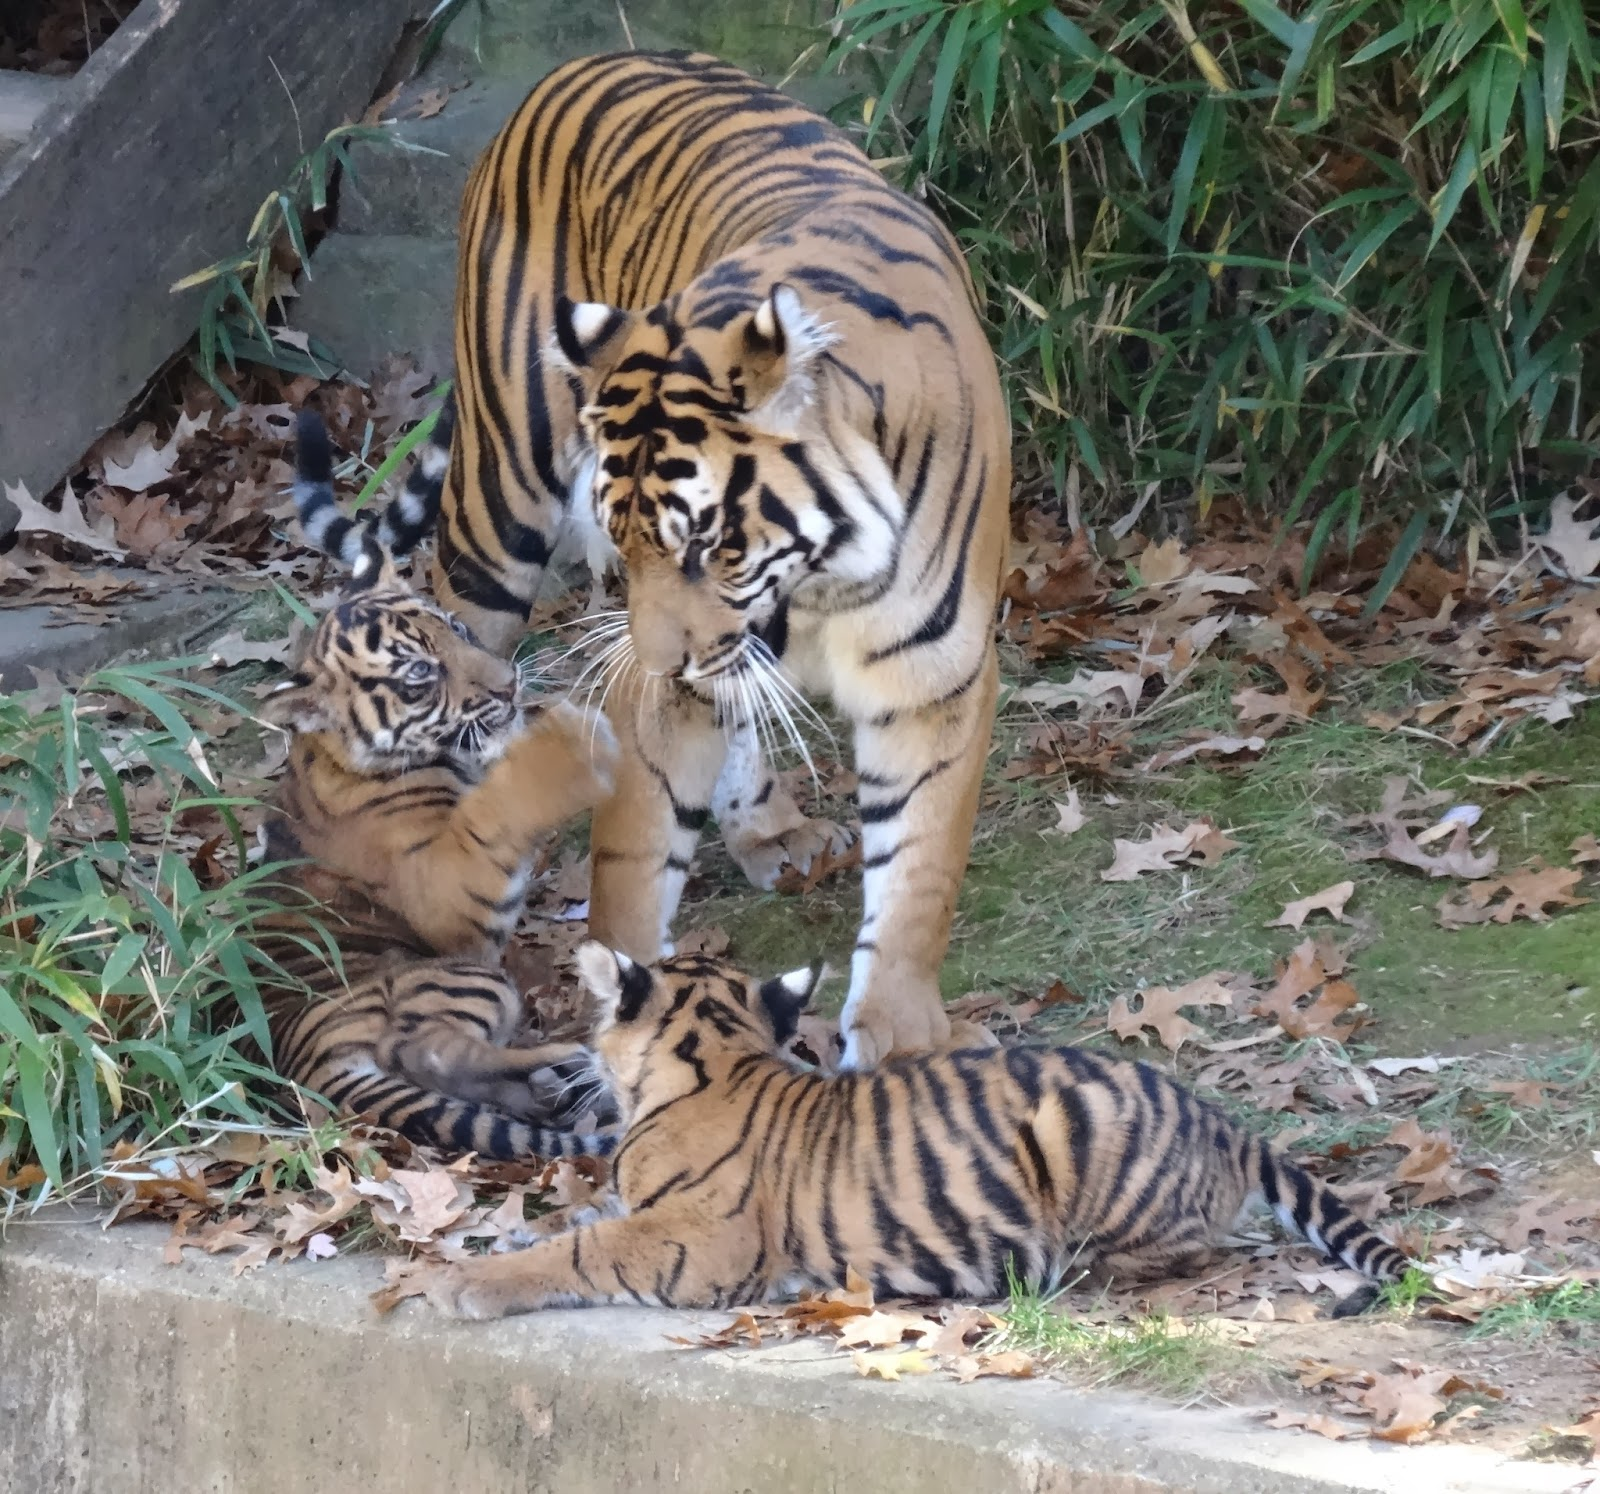 Love joy and peas cute tiger cubs playing photos cute tiger cubs playing photos altavistaventures Gallery